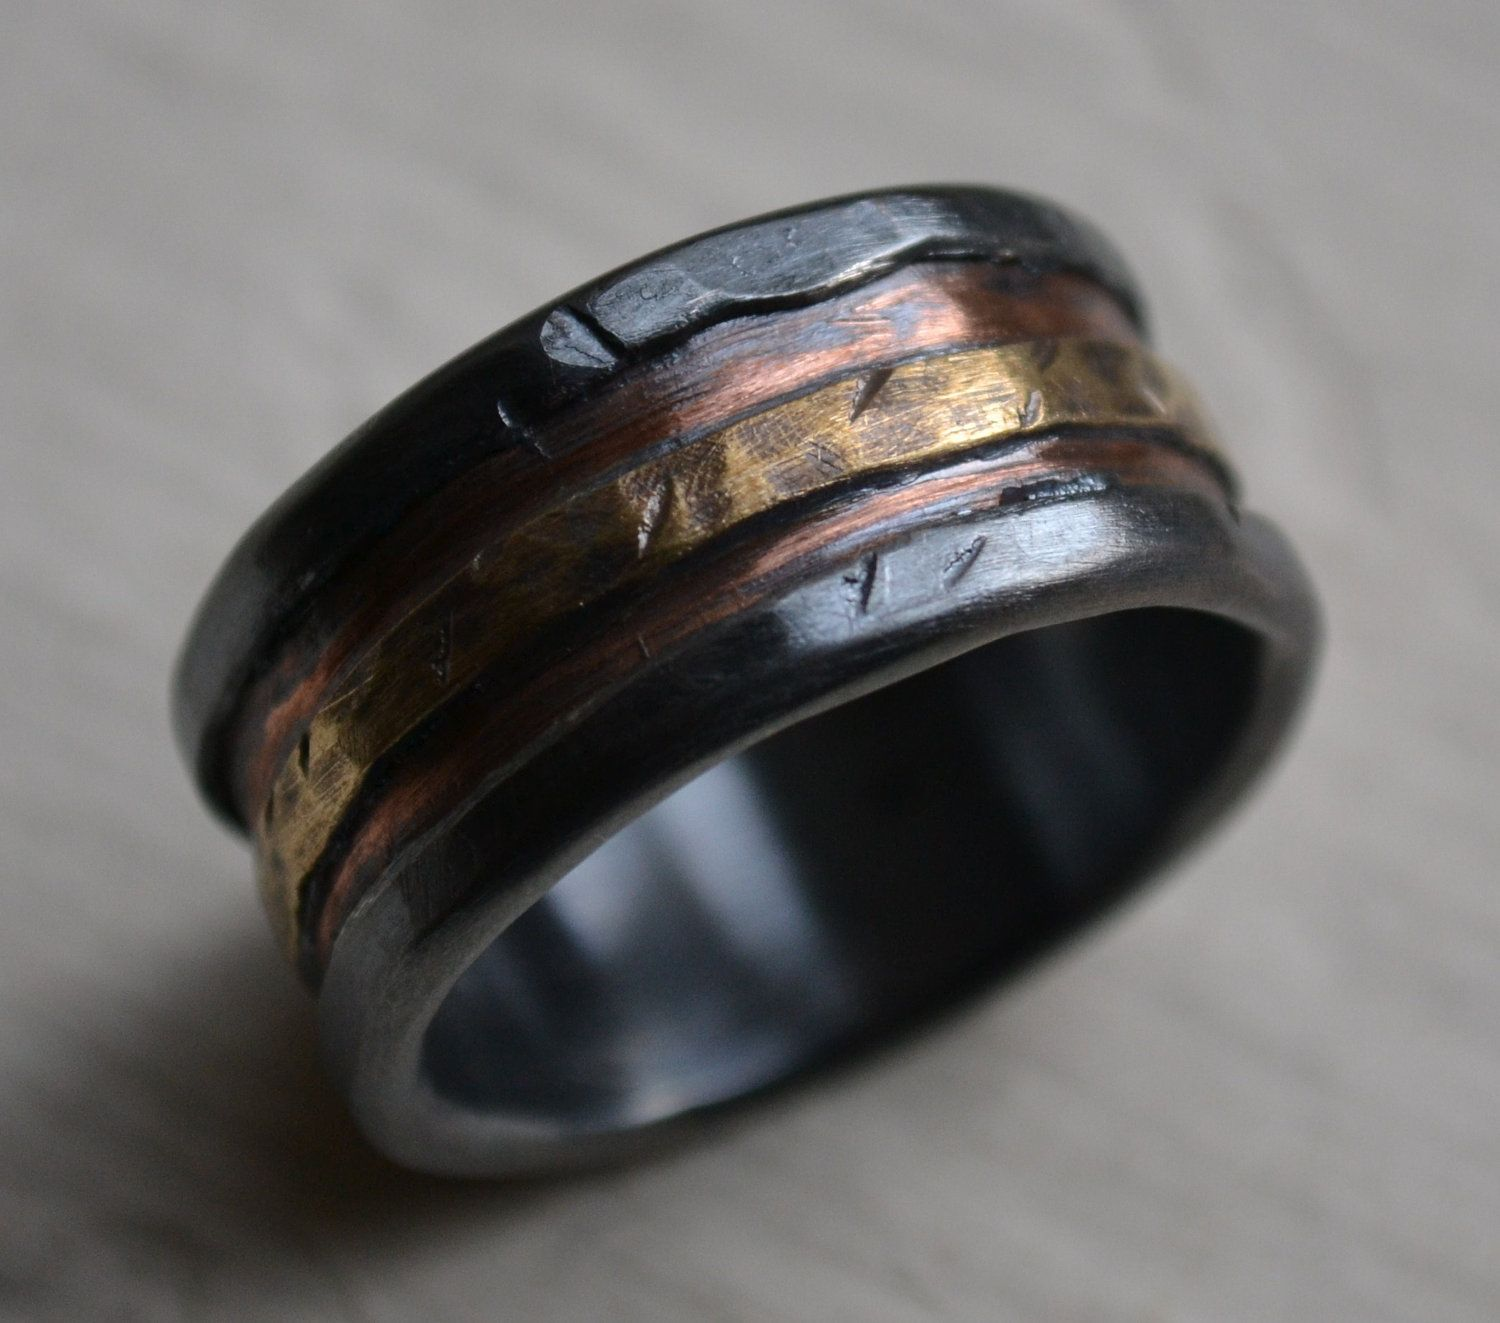 Mens Wedding Band Rustic Fine Silver Copper And Br Handmade Designed Wide Ring Manly Customized 275 00 Via Etsy